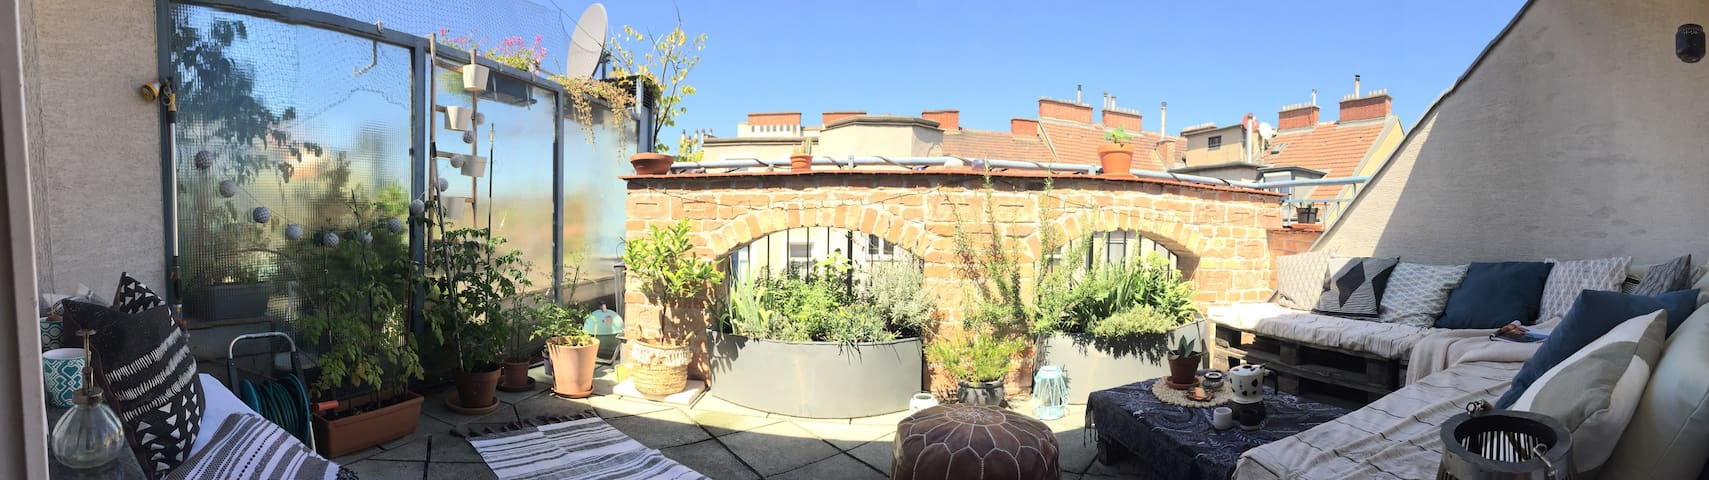 spacious BR, central location w/ ♡ rooftop terrace